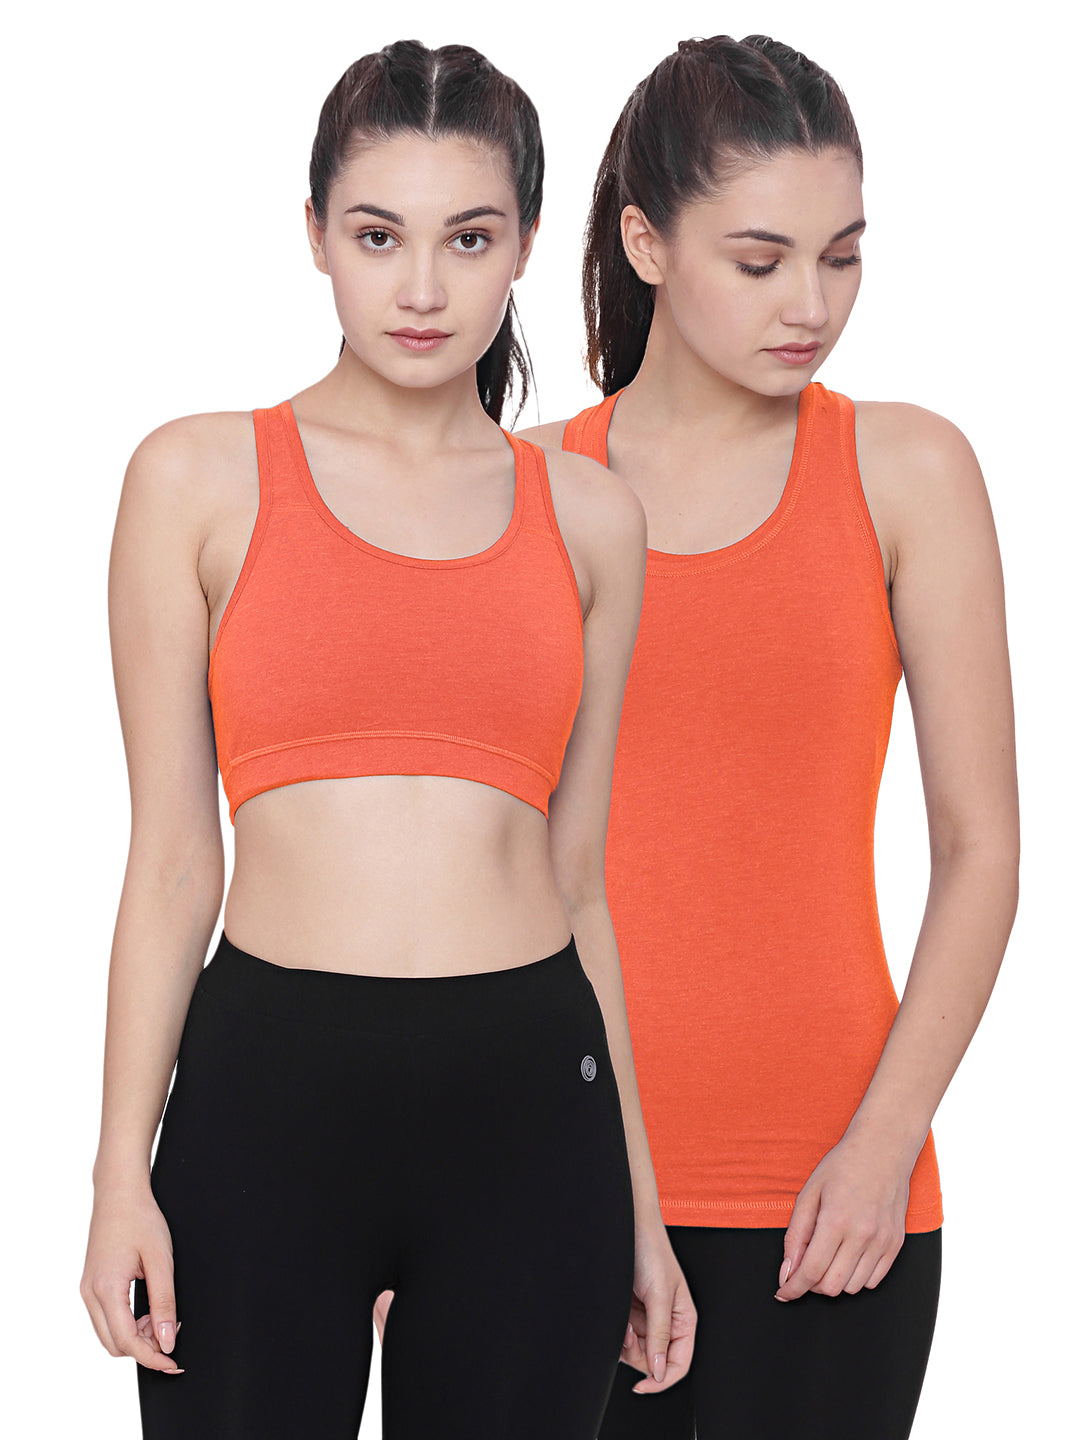 A model wearing an orange organic cotton sports bra